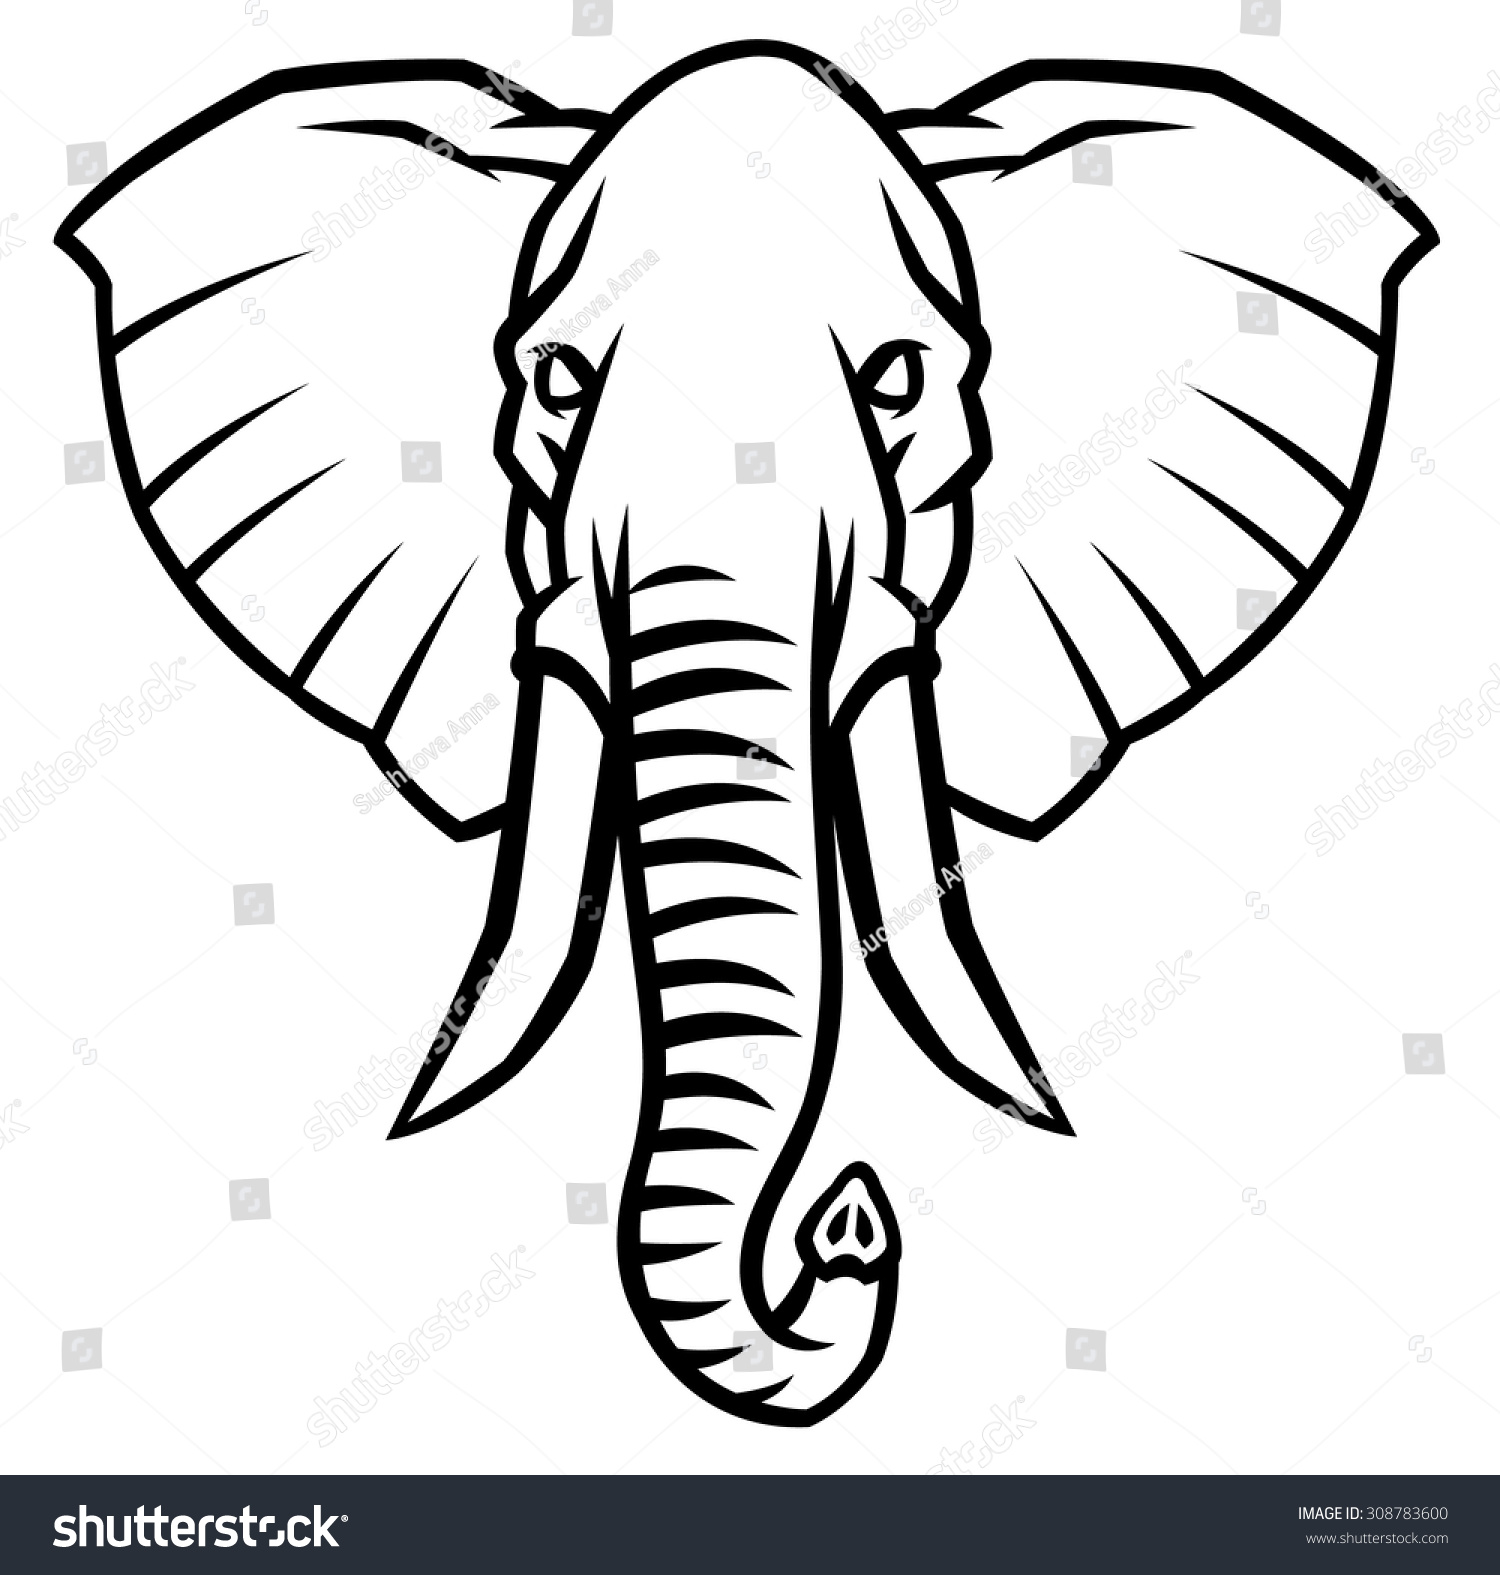 head of an elephant with large tusks - vector illustration for logo ...